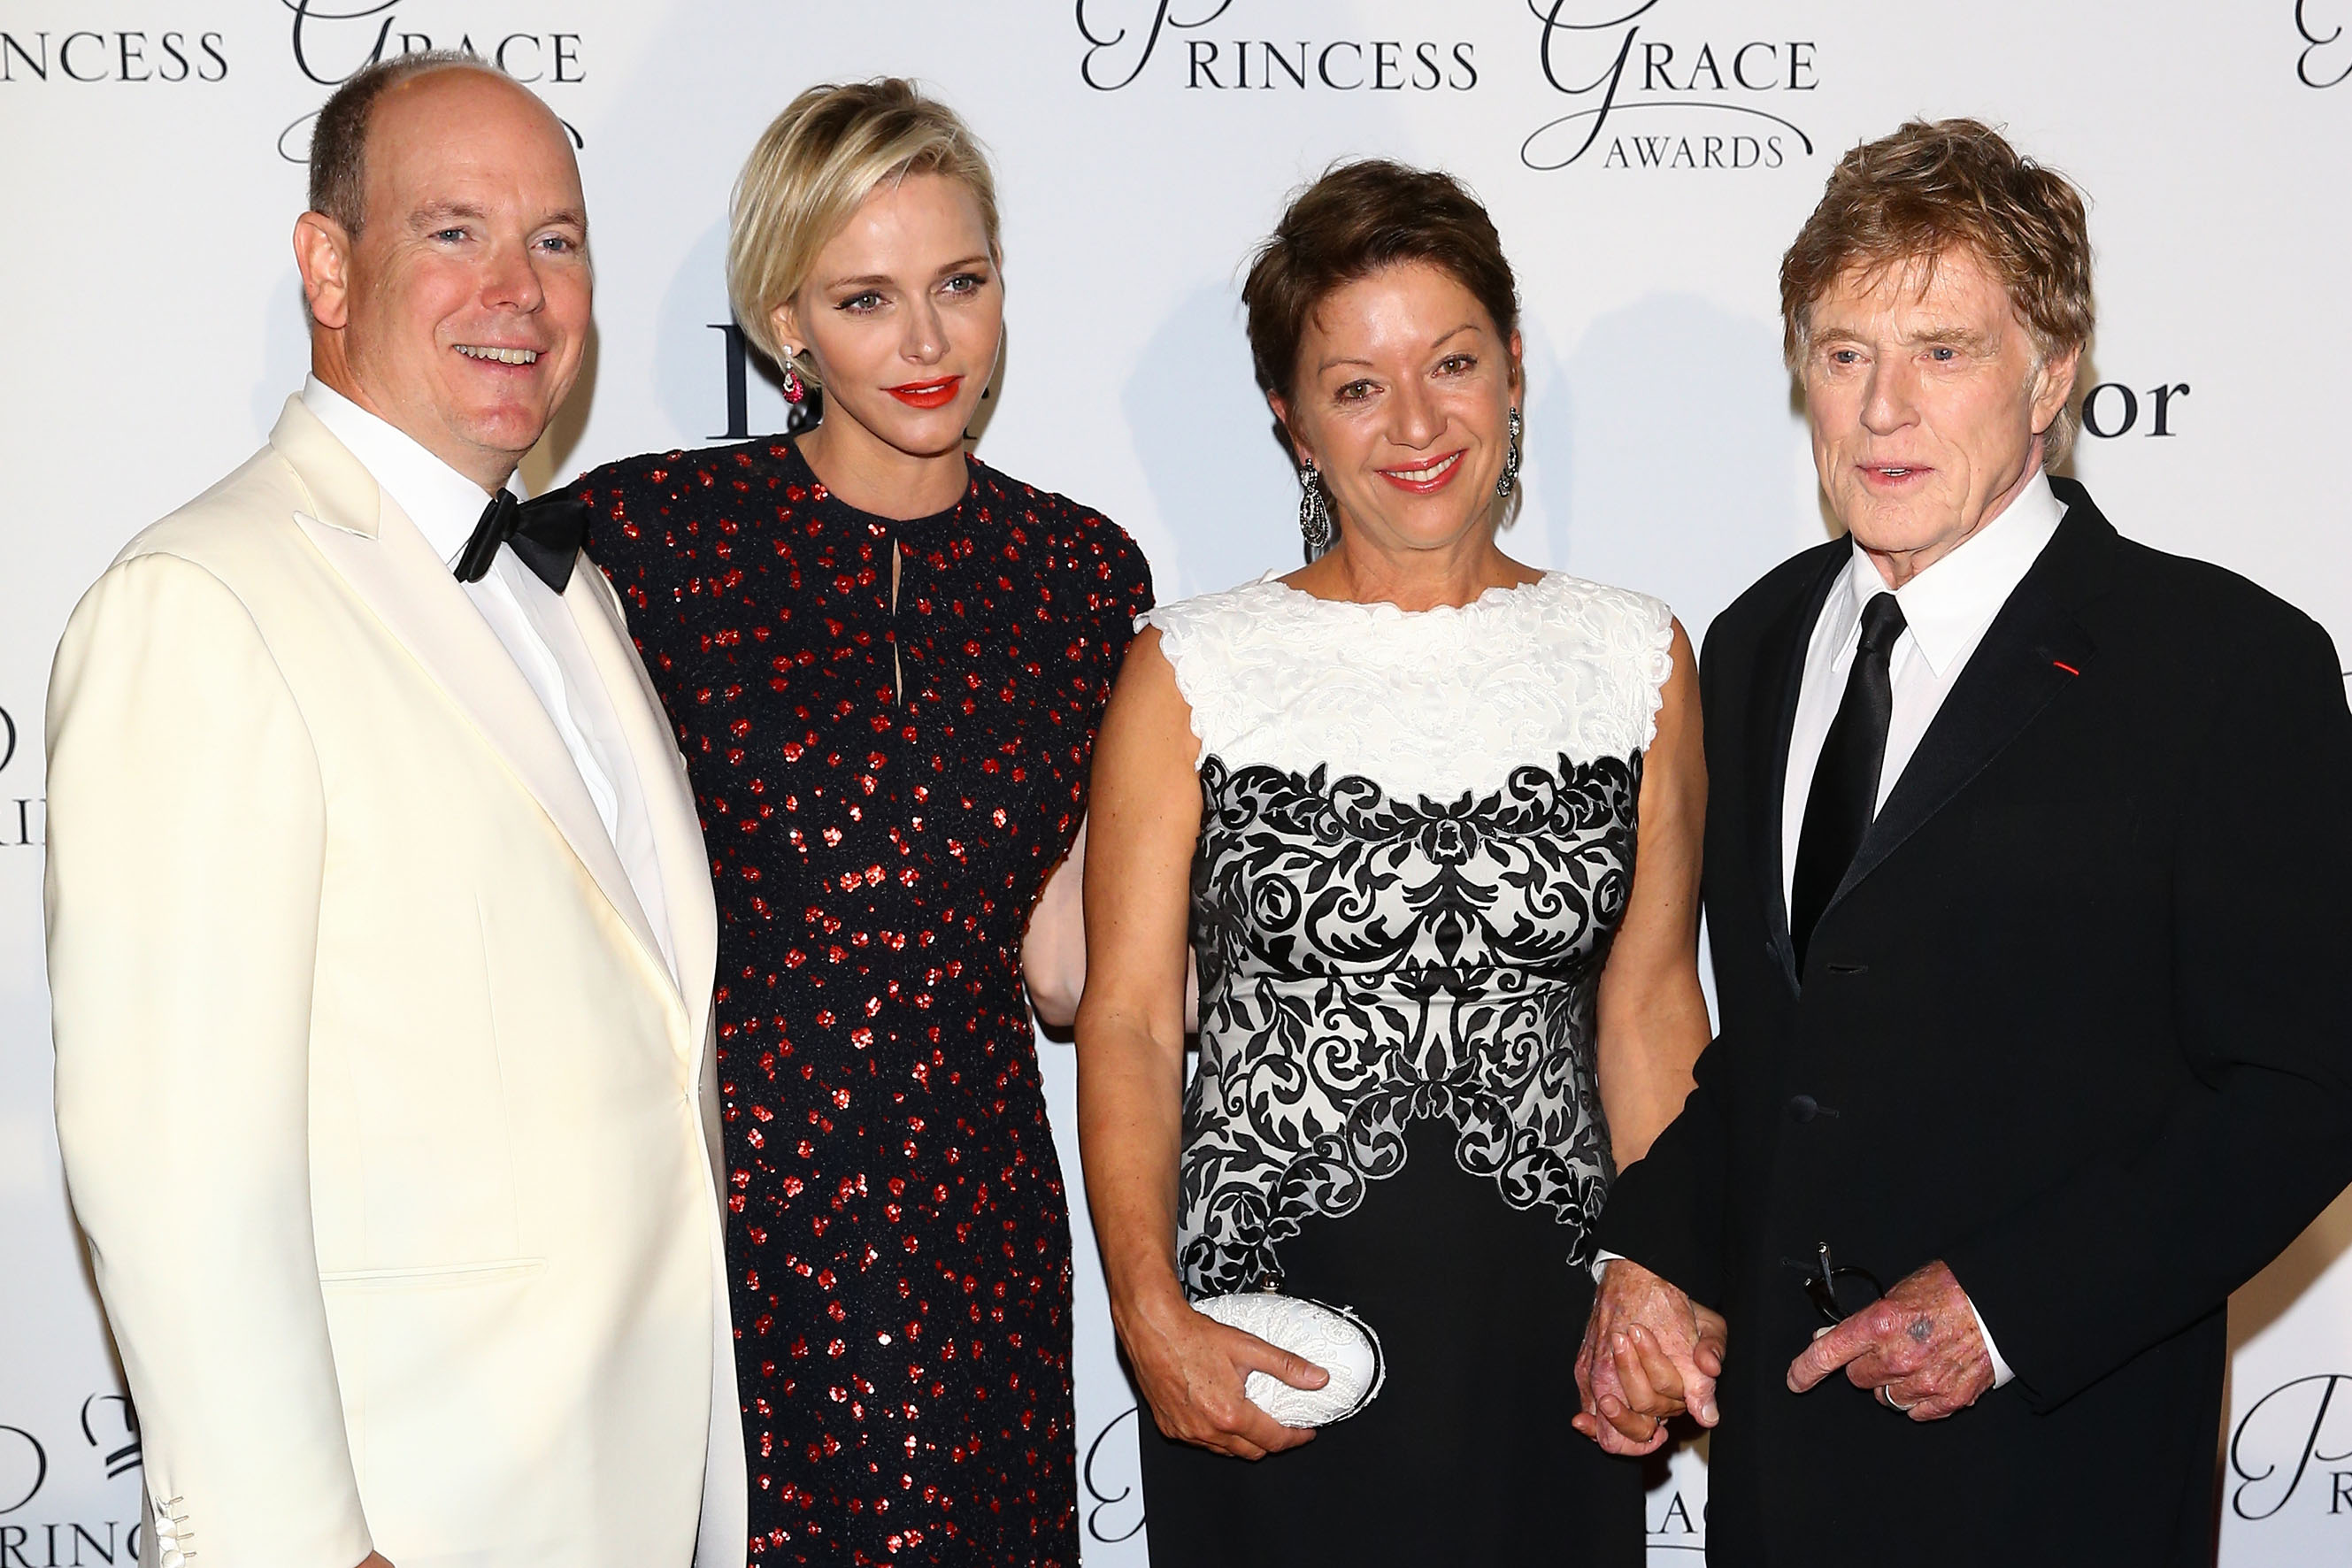 PRINCESS GRACE AWARDS GALA